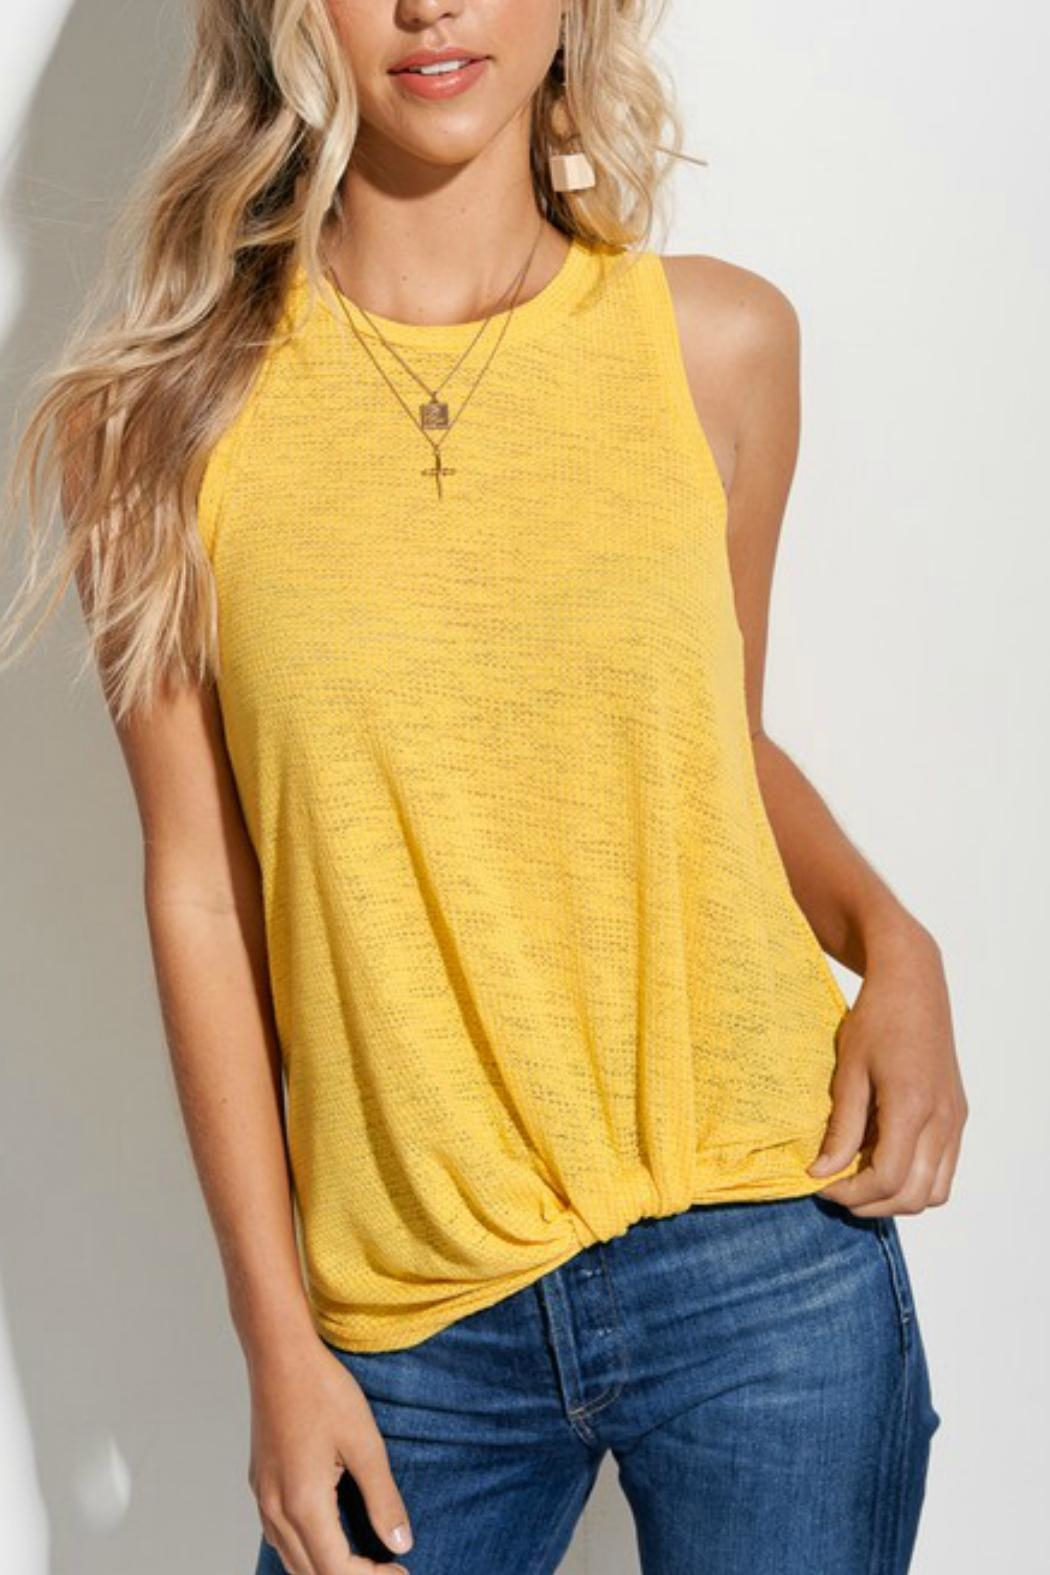 LA MIEL  Knit Knotted Yellow-Shirt - Front Full Image